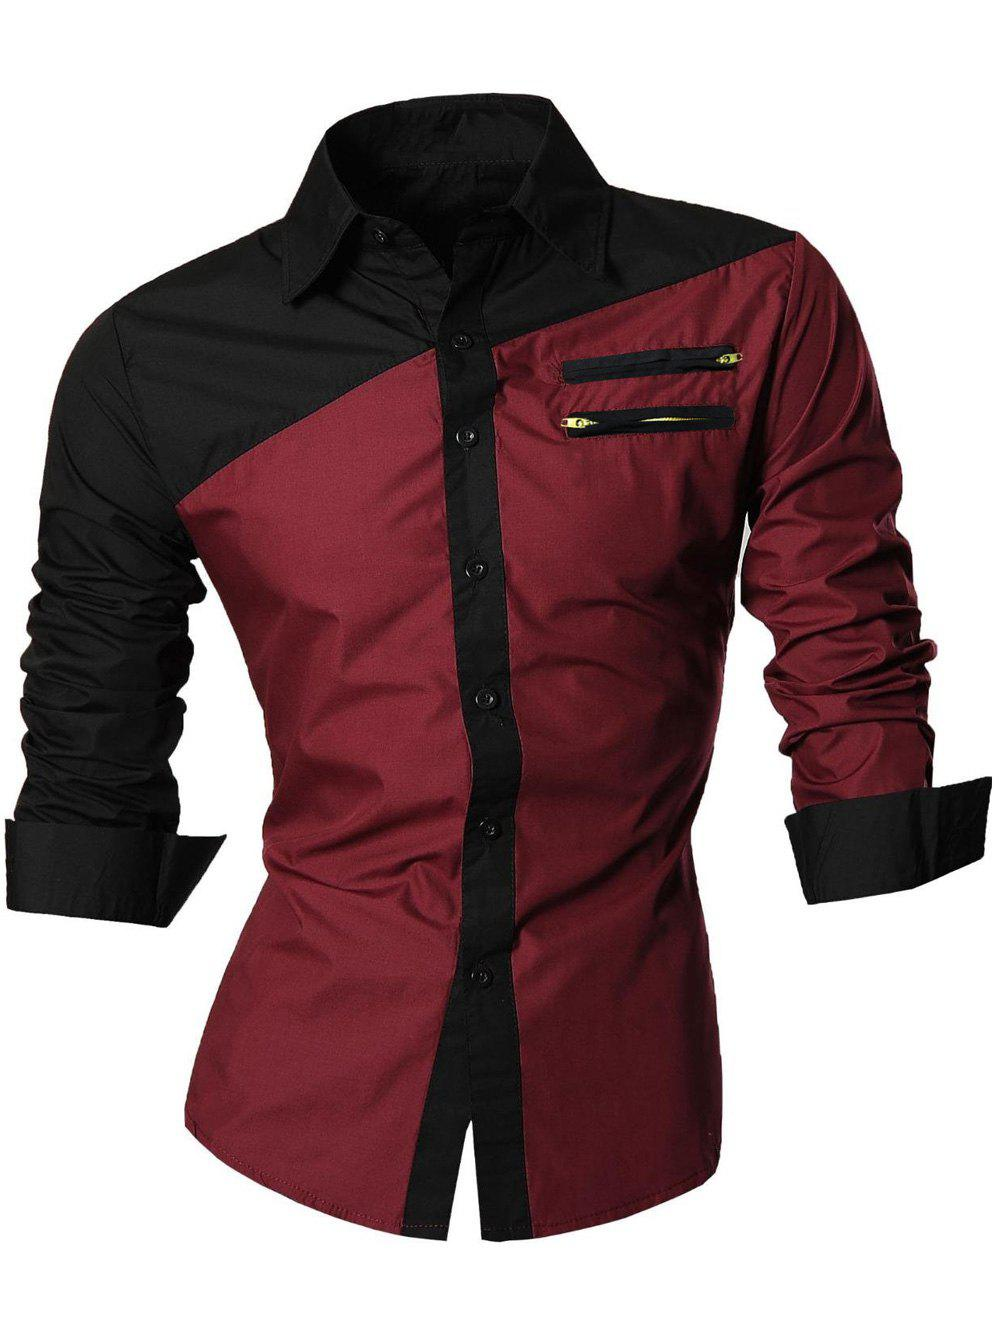 Zipper Embellished Long Sleeve Color Block Shirt - WINE RED M